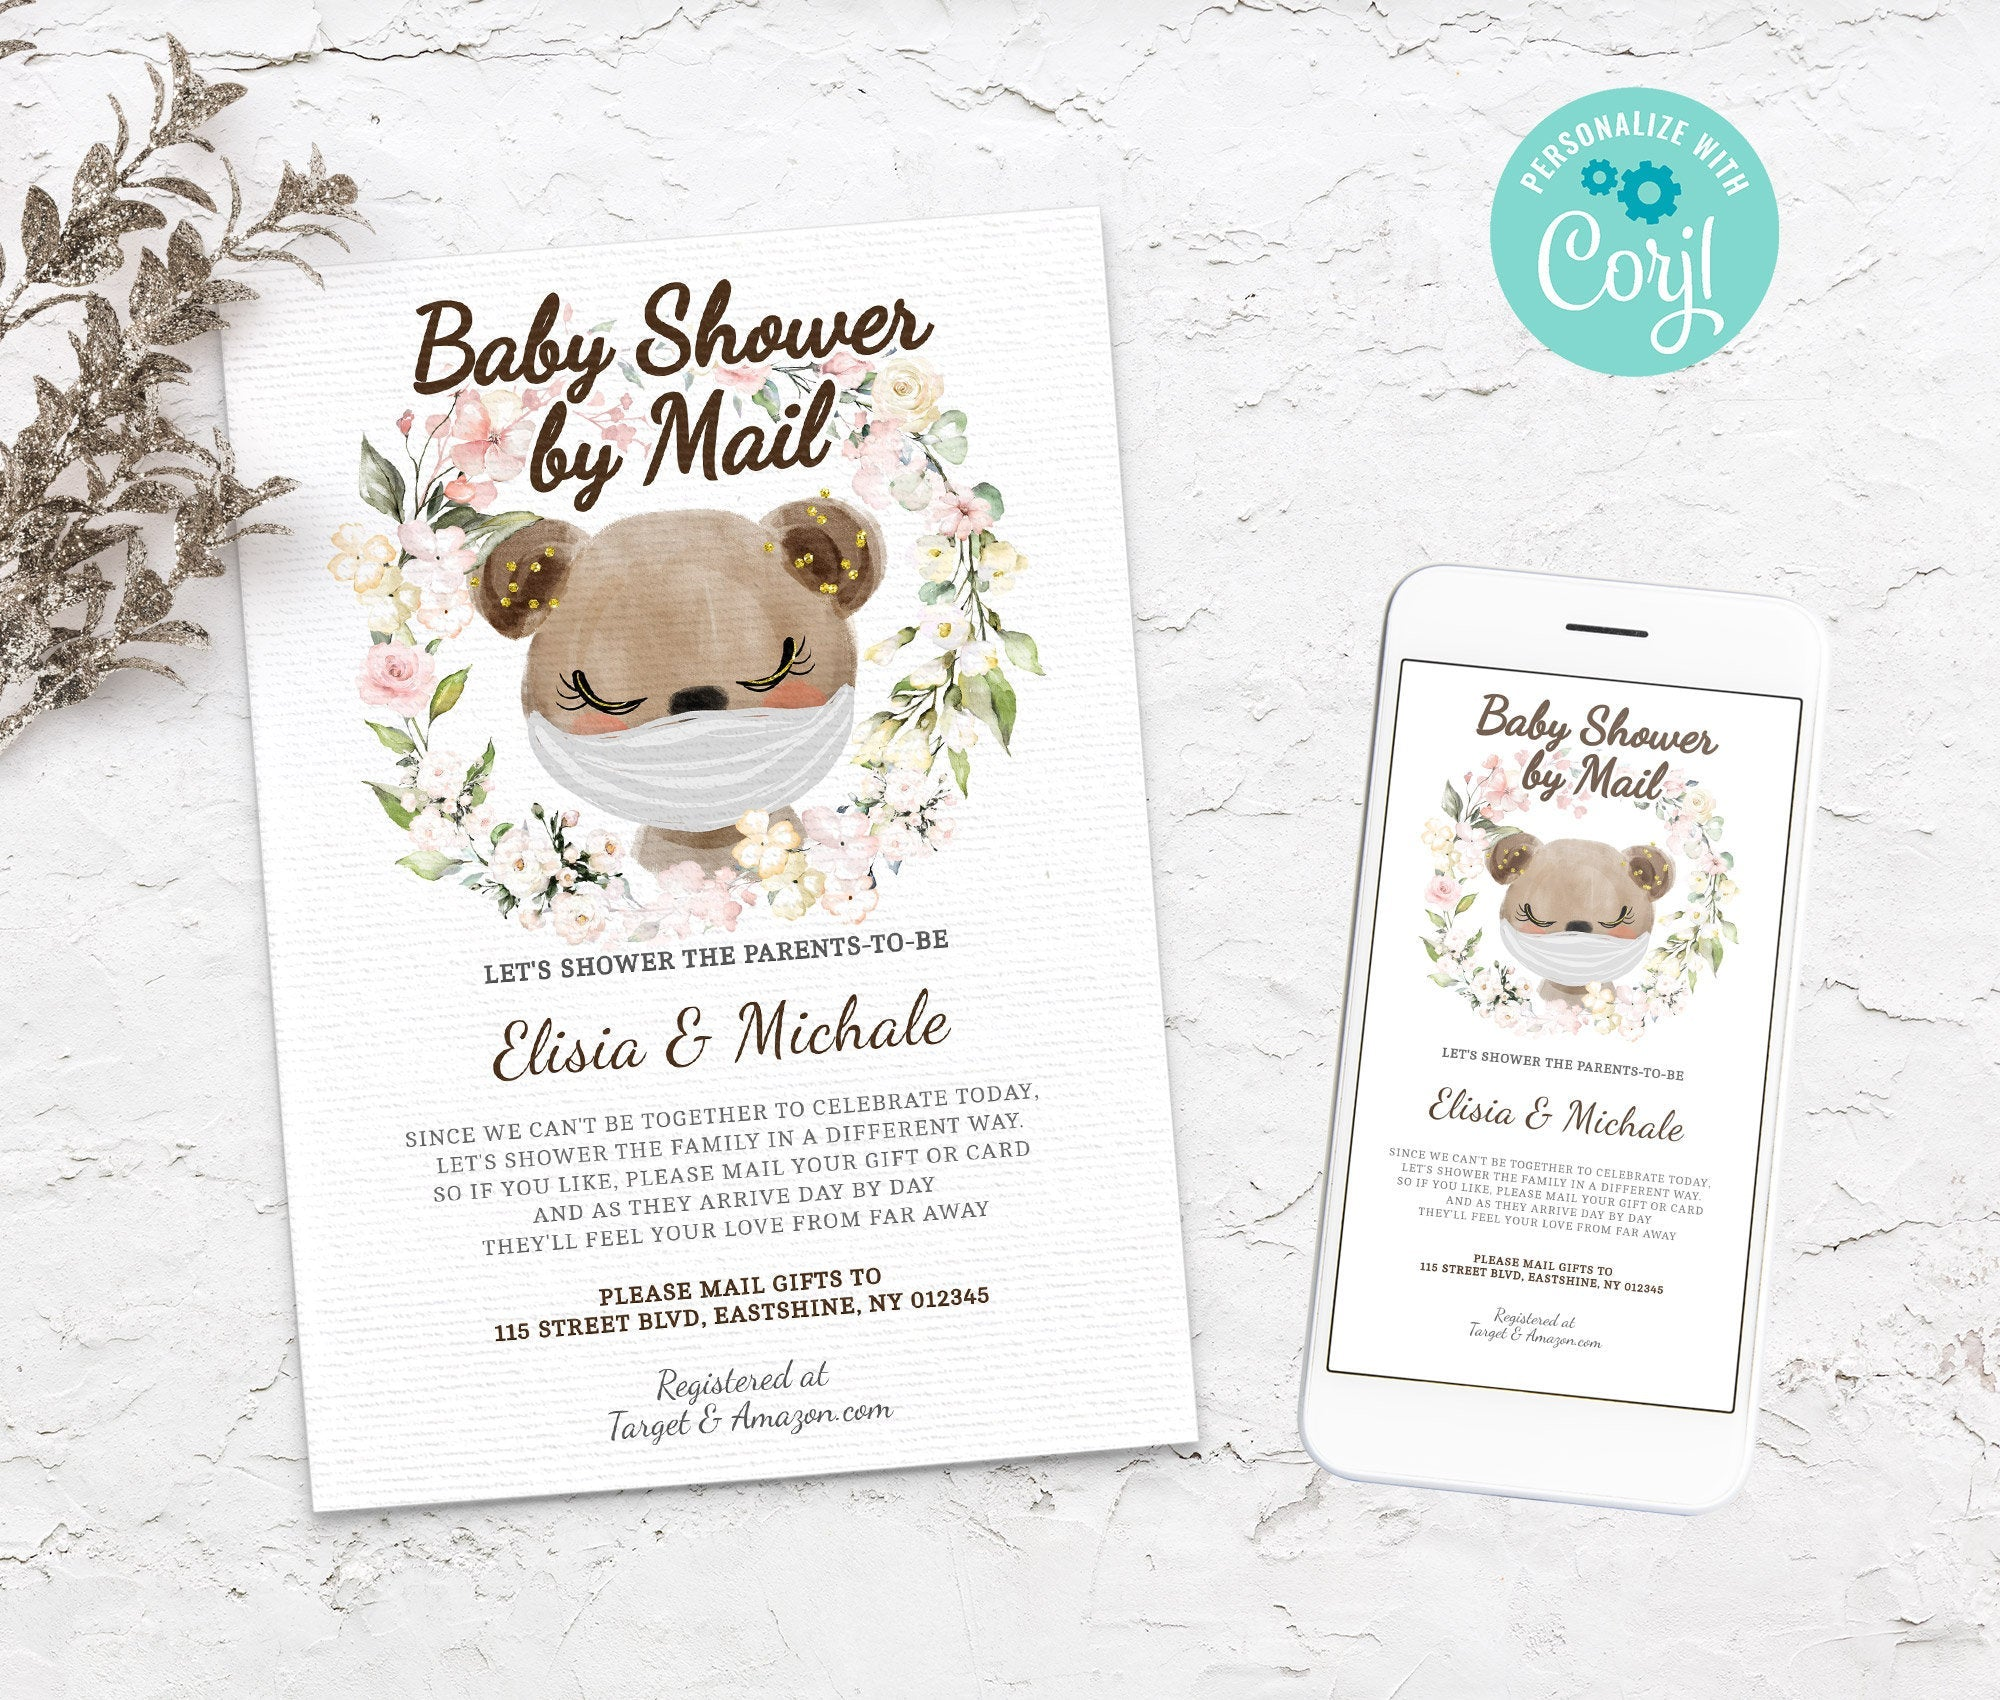 Baby Shower by Mail Bear Template - Baby shower invitation - Shower by Mail, Shower invite,  Editable Text, Instant Download,3614 BS3601